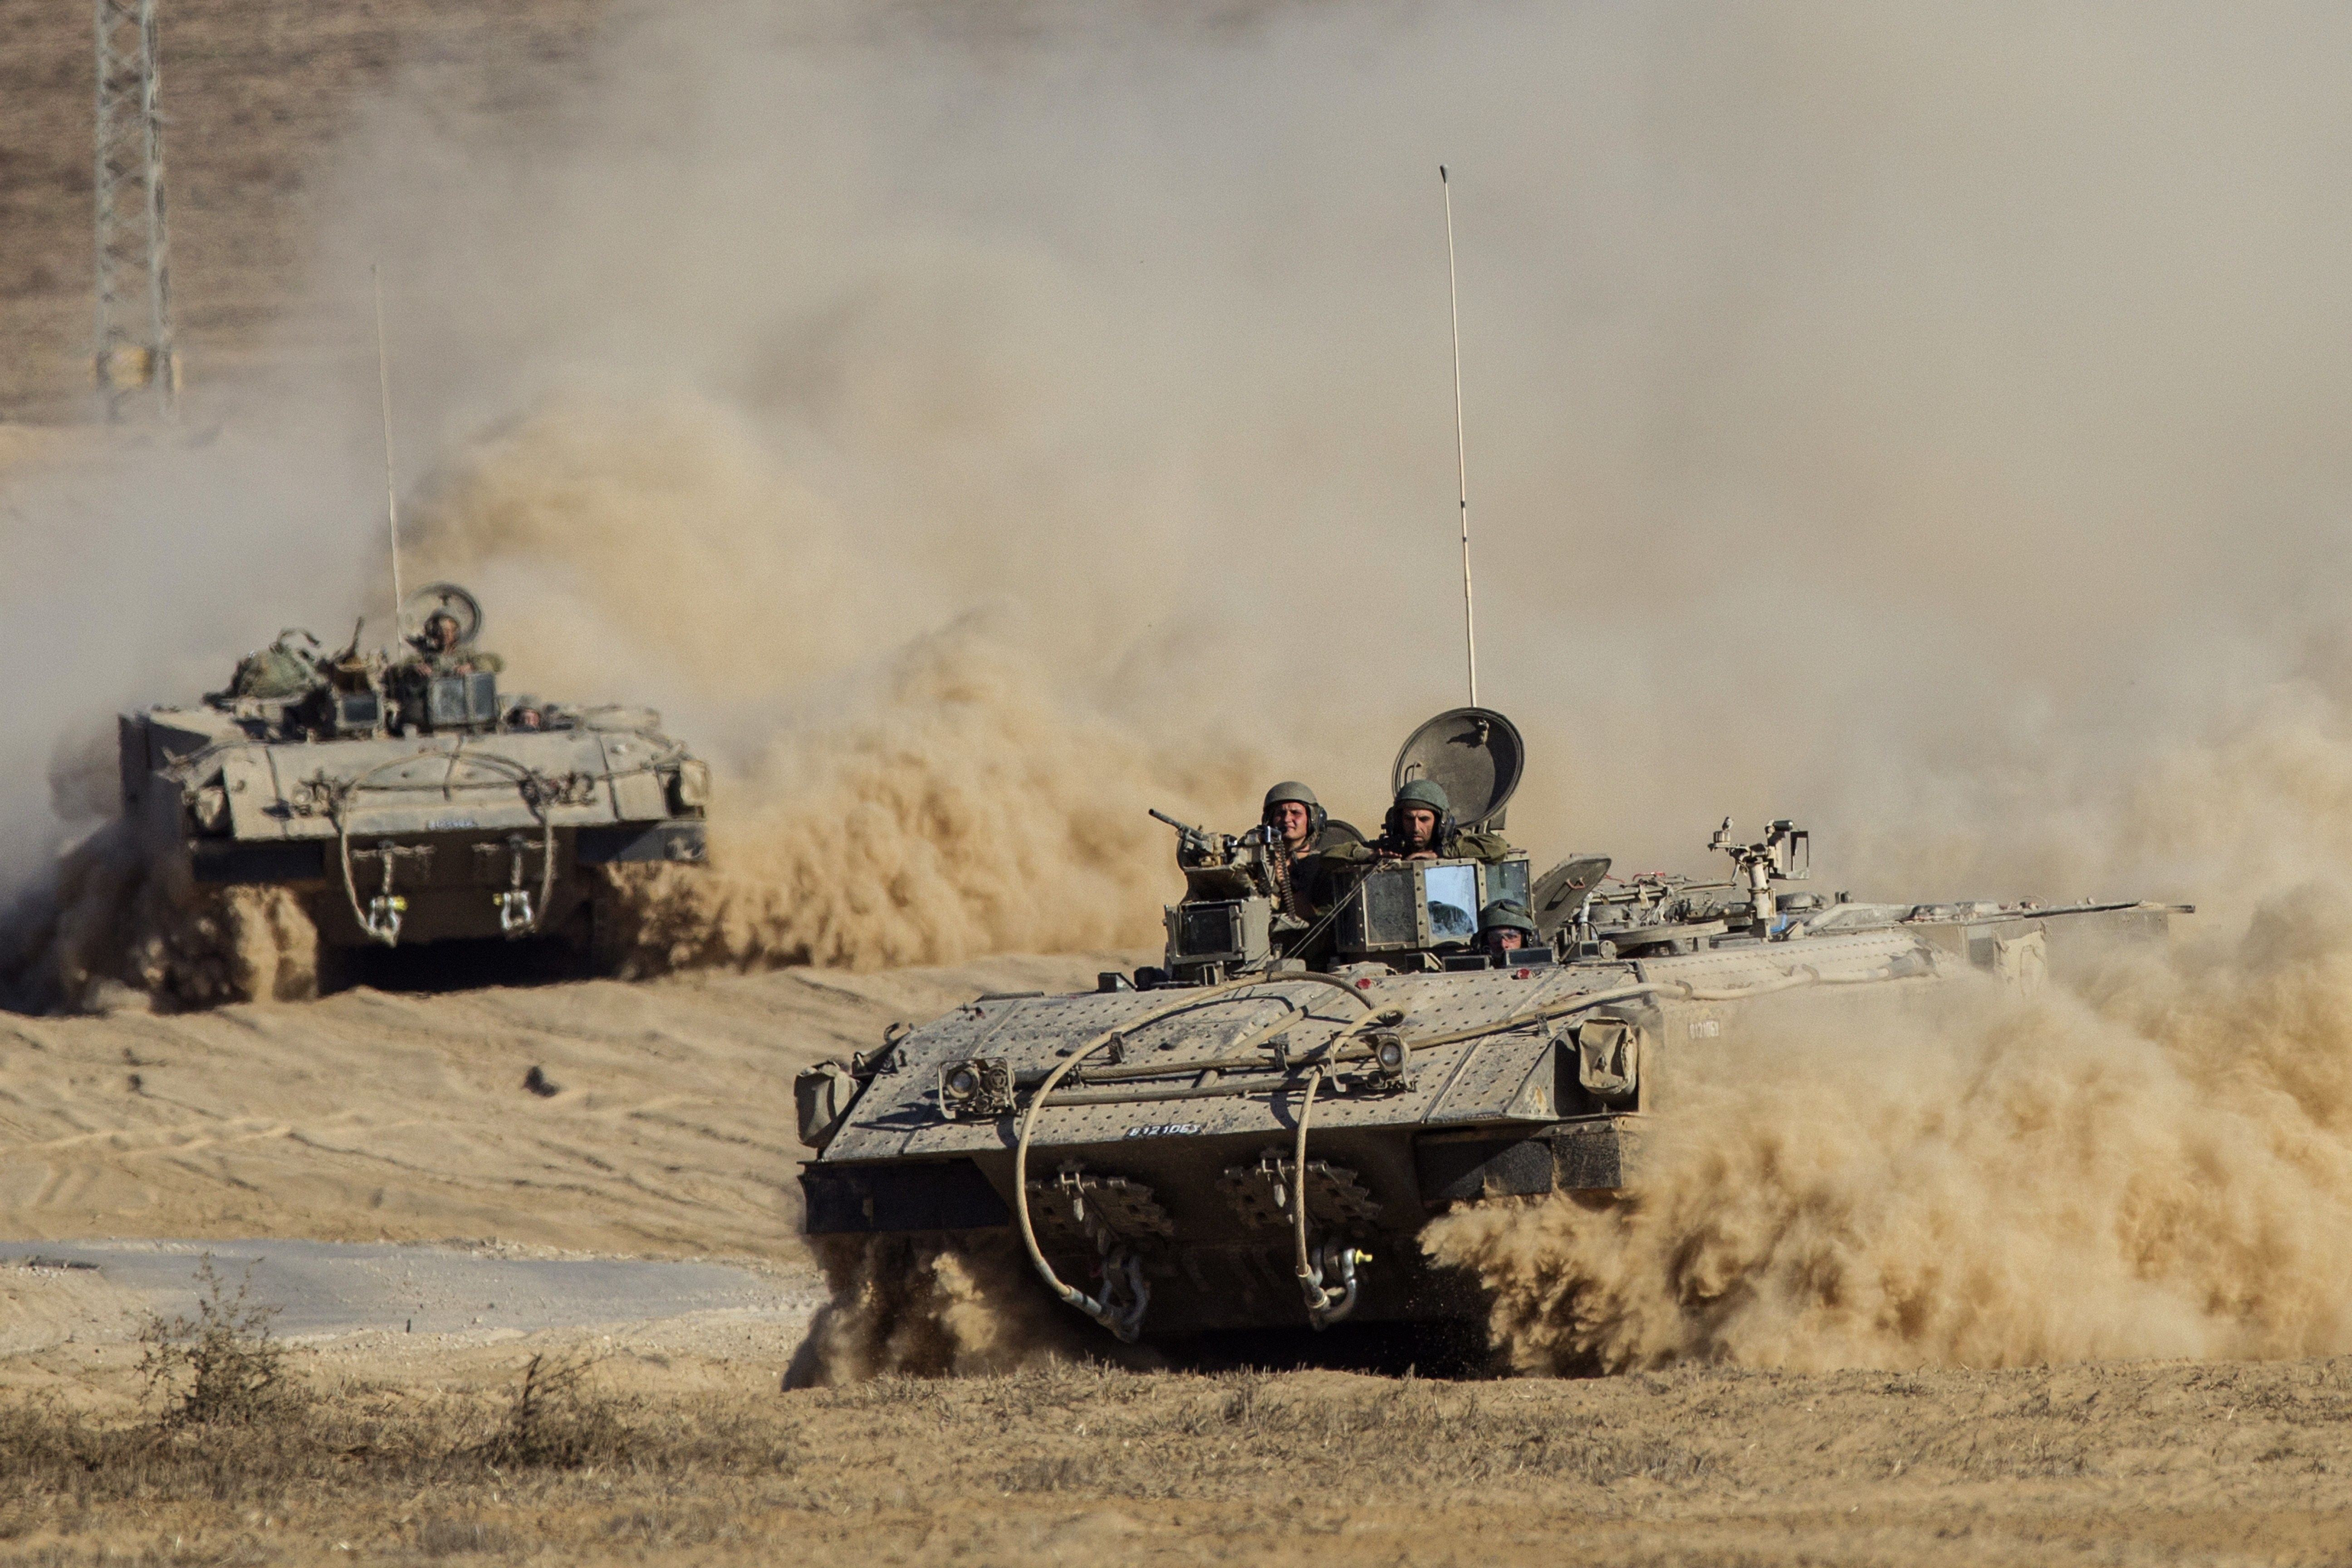 Israeli army armored personnel carriers (APC) move along Israel's border with the Gaza Strip on July 30, 2014.